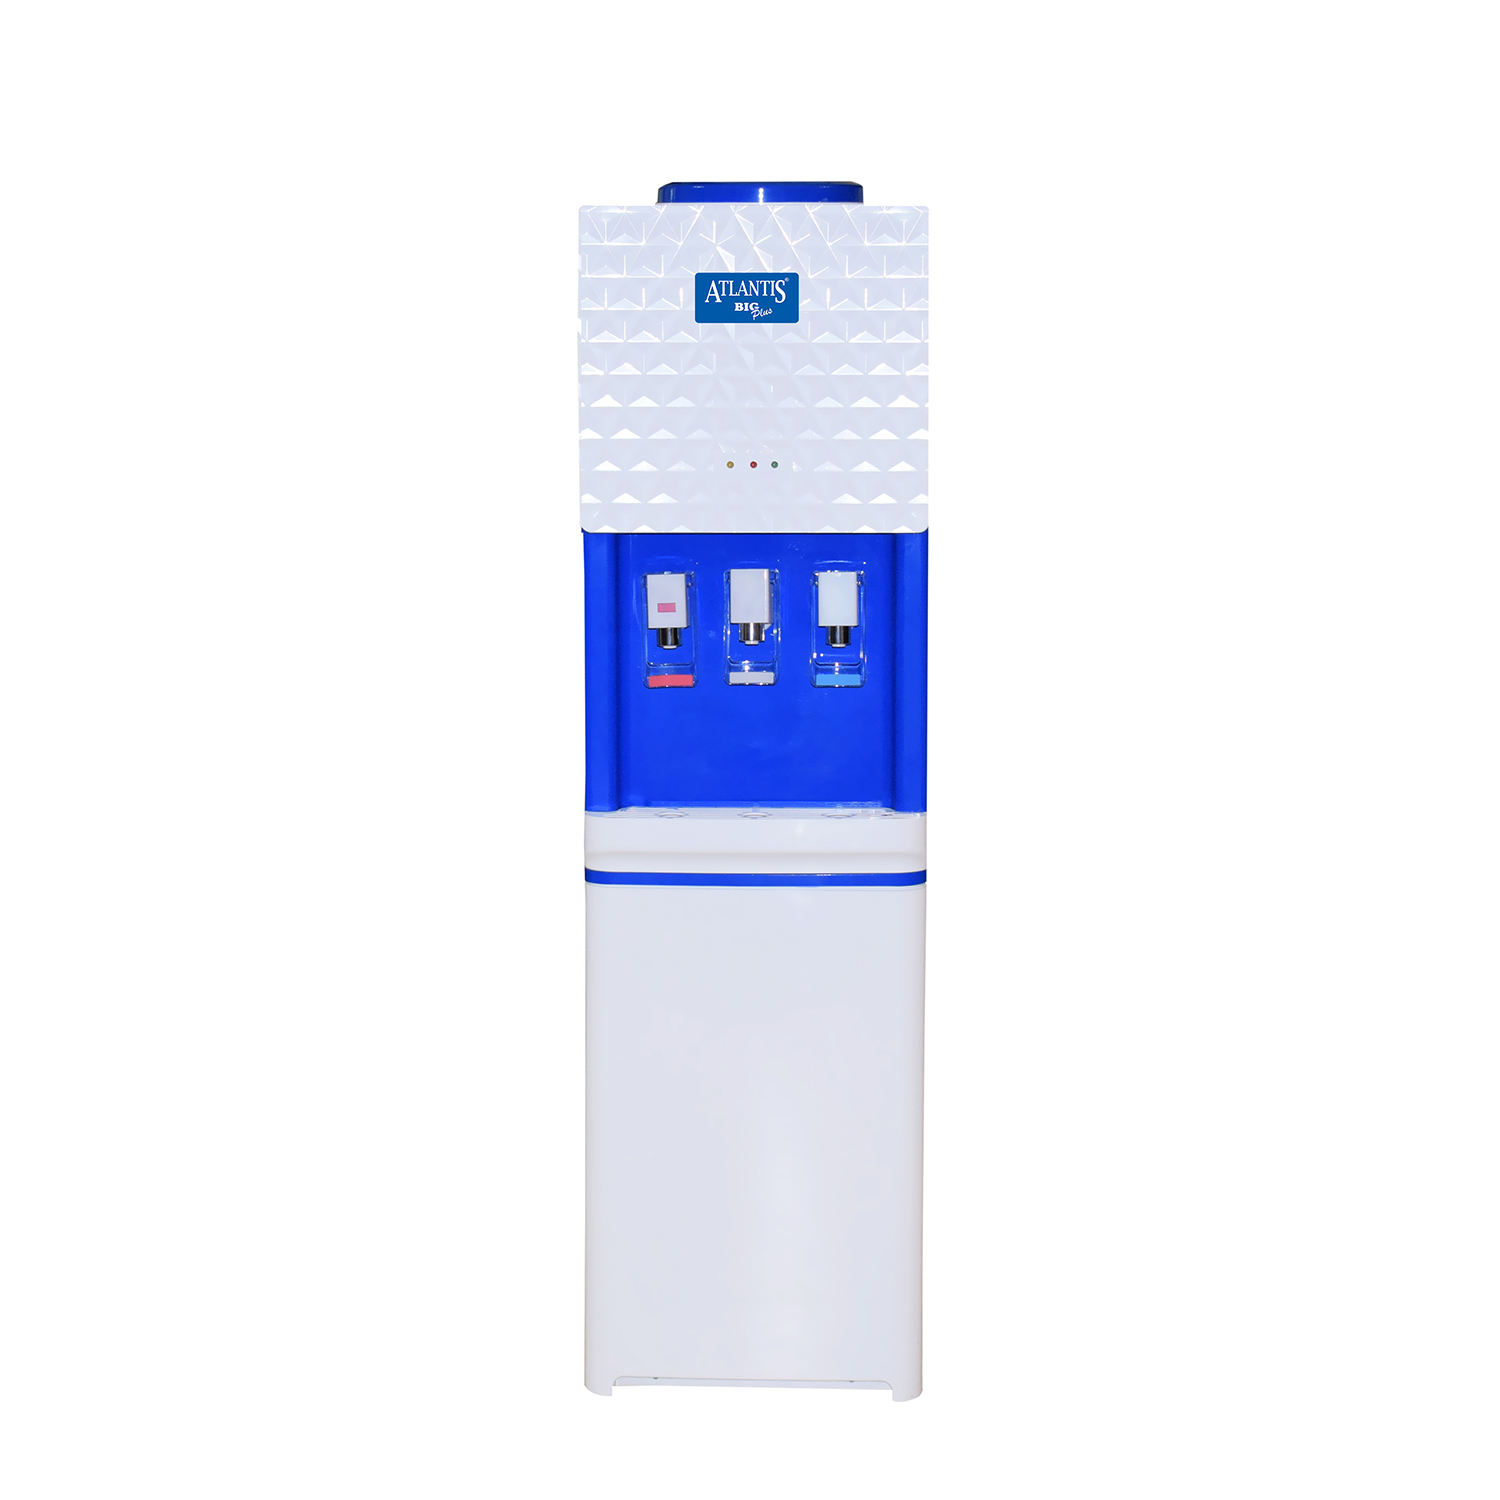 2020 New Design Automatic Drinking Water dispenser